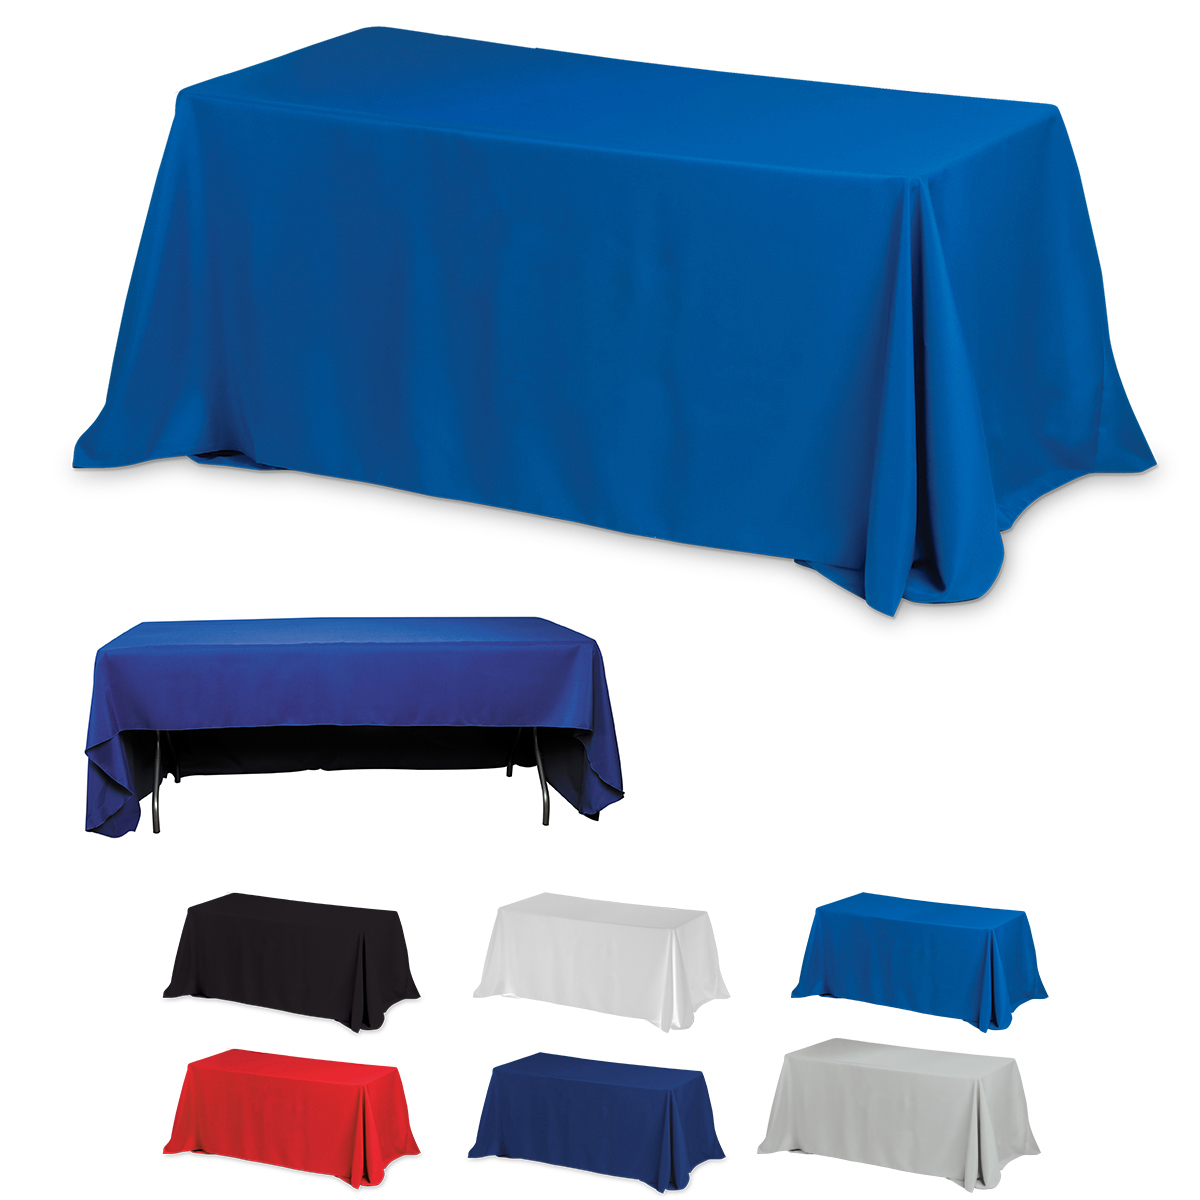 6 39 3 sided economy table covers table throws blanks for Table th row group